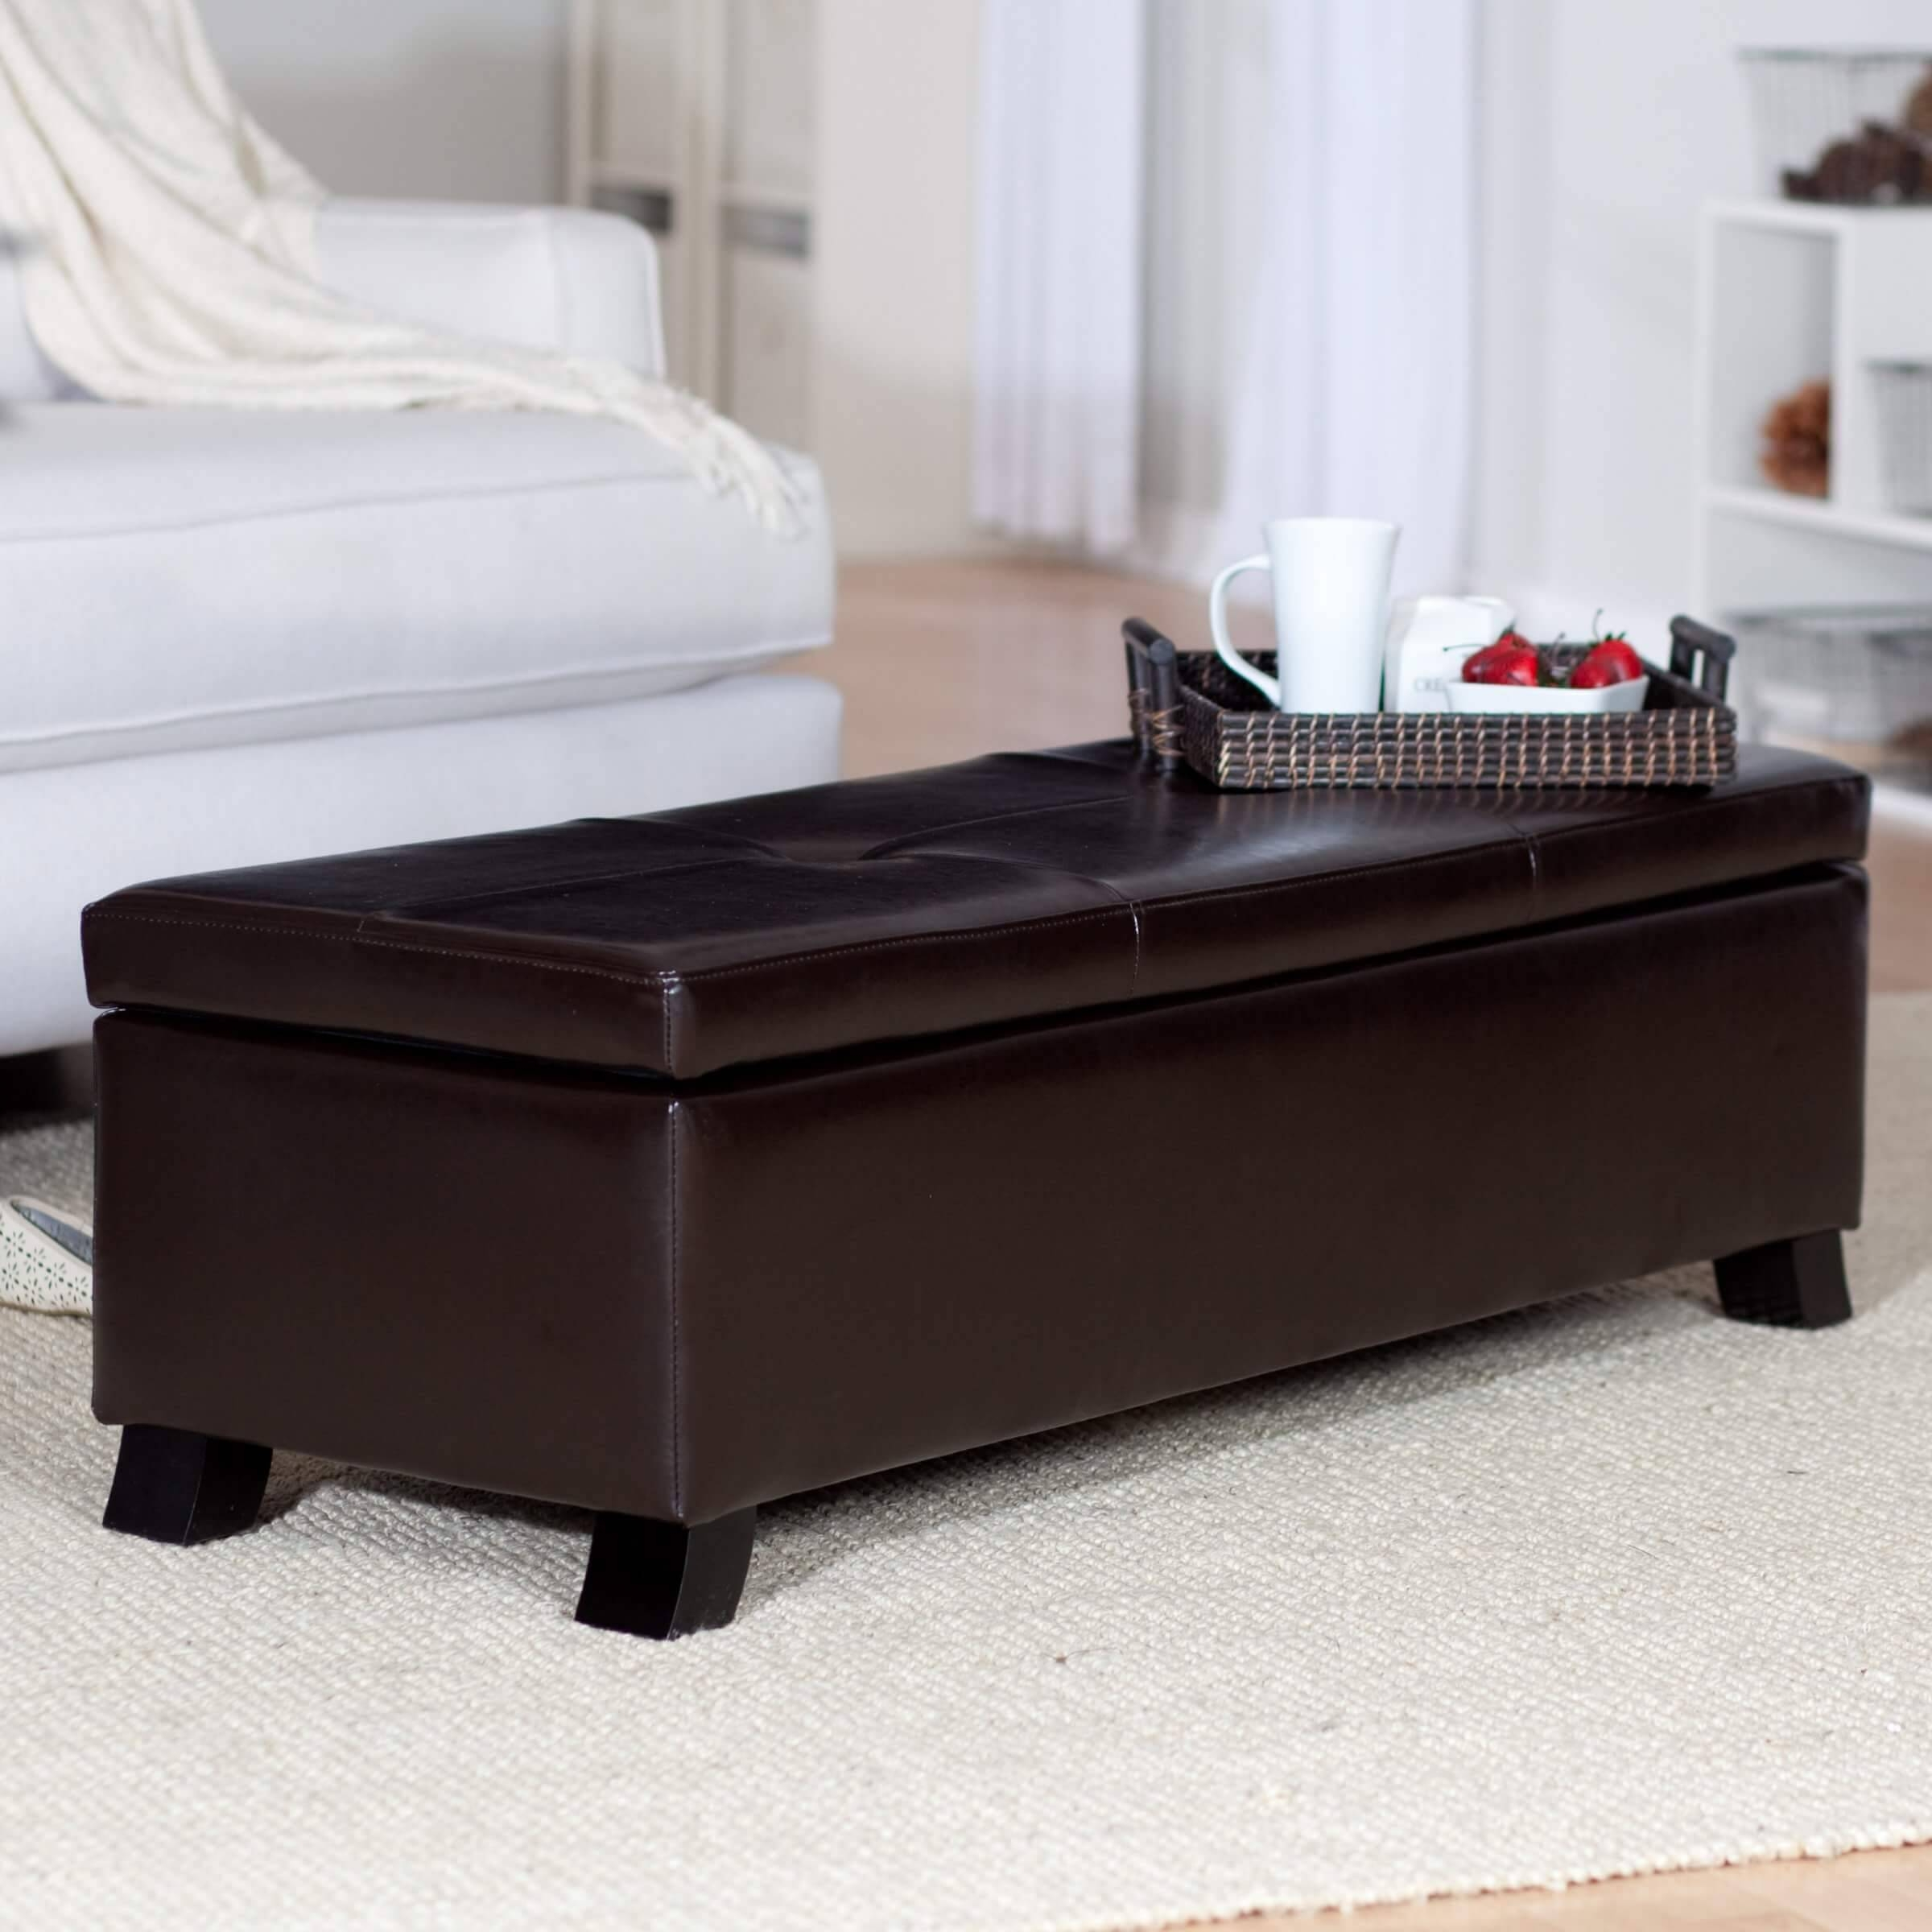 36 Top Brown Leather Ottoman Coffee Tables intended for Brown Leather Ottoman Coffee Tables (Image 3 of 30)